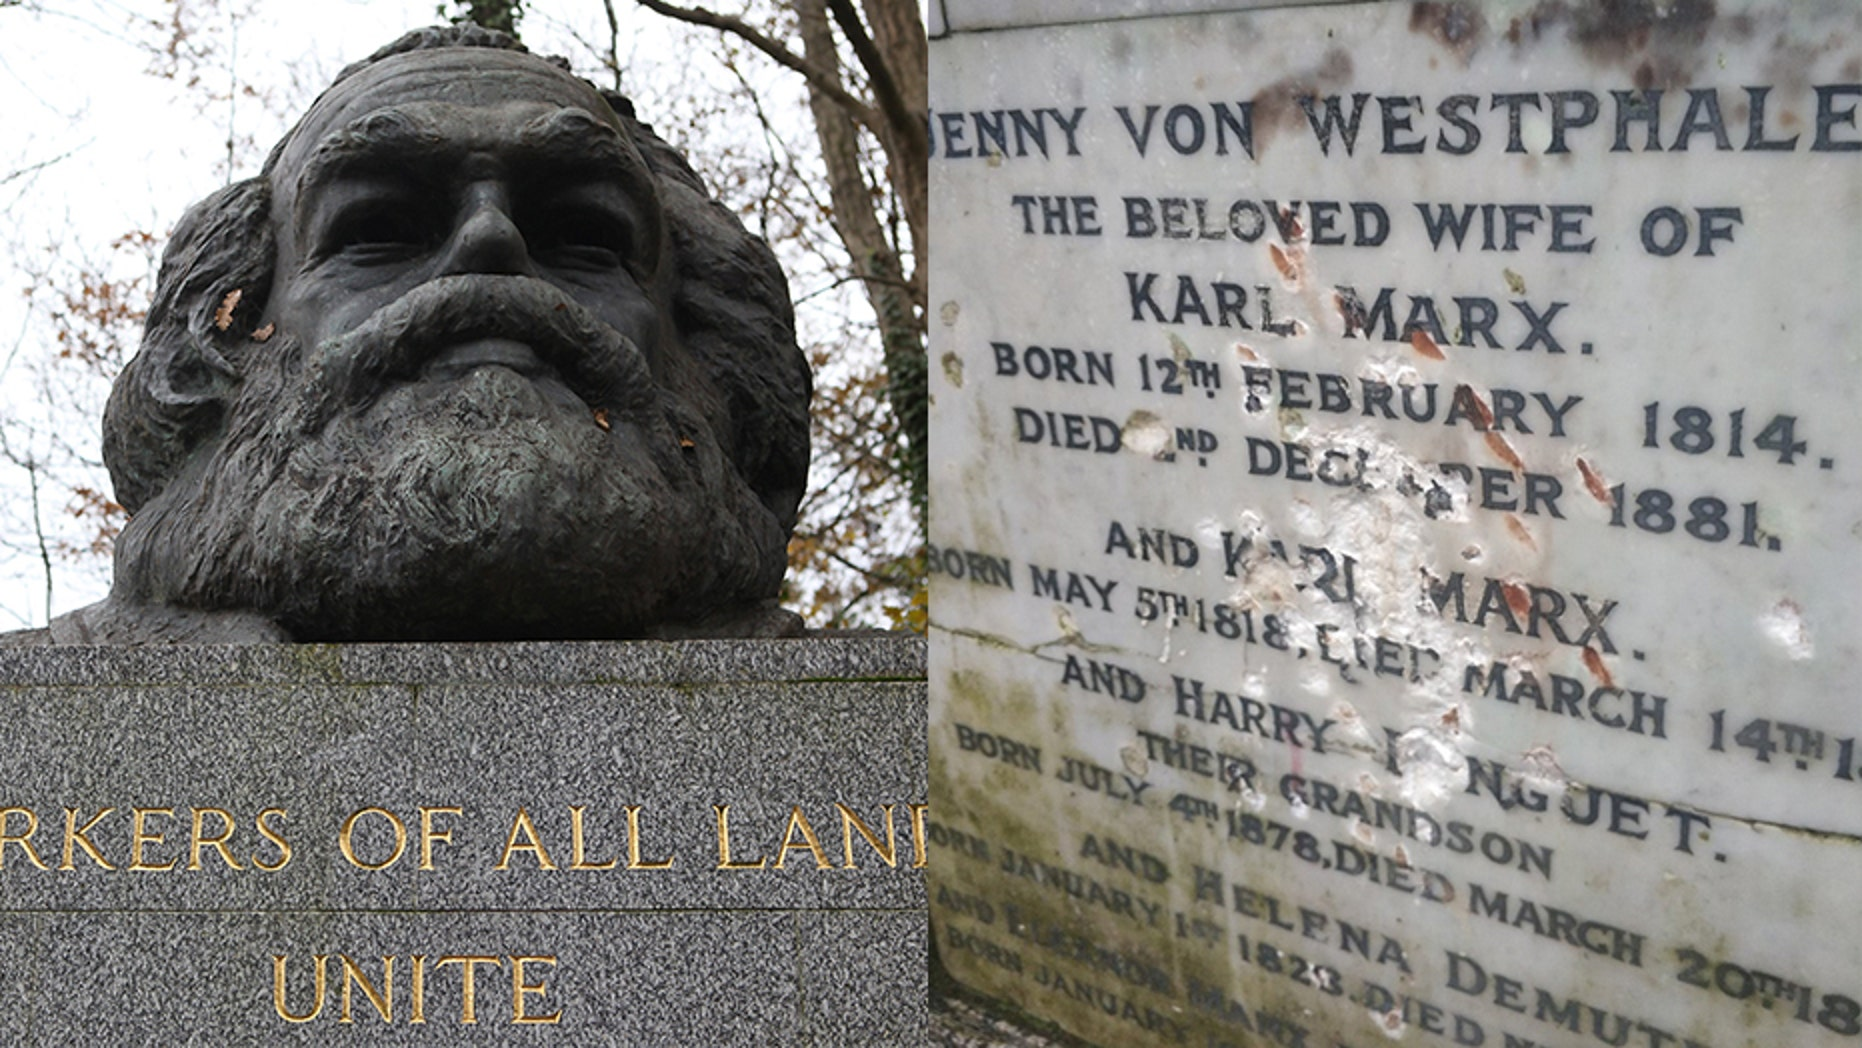 Karl Marx's Gravestone 'Will Never Be the Same'